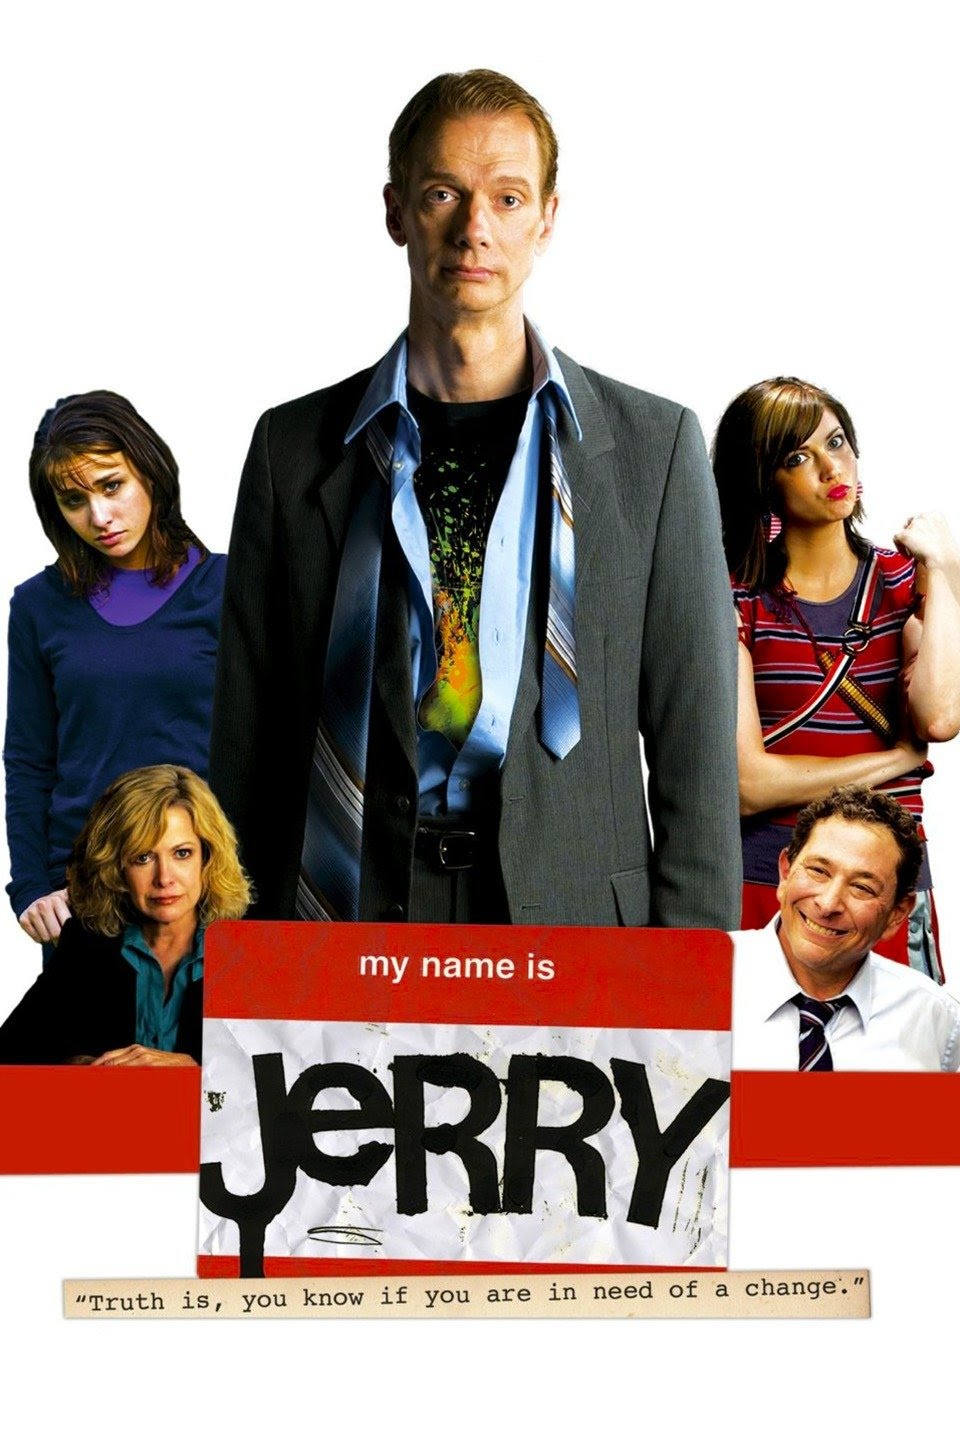 My Name Is Jerry(1).jpeg